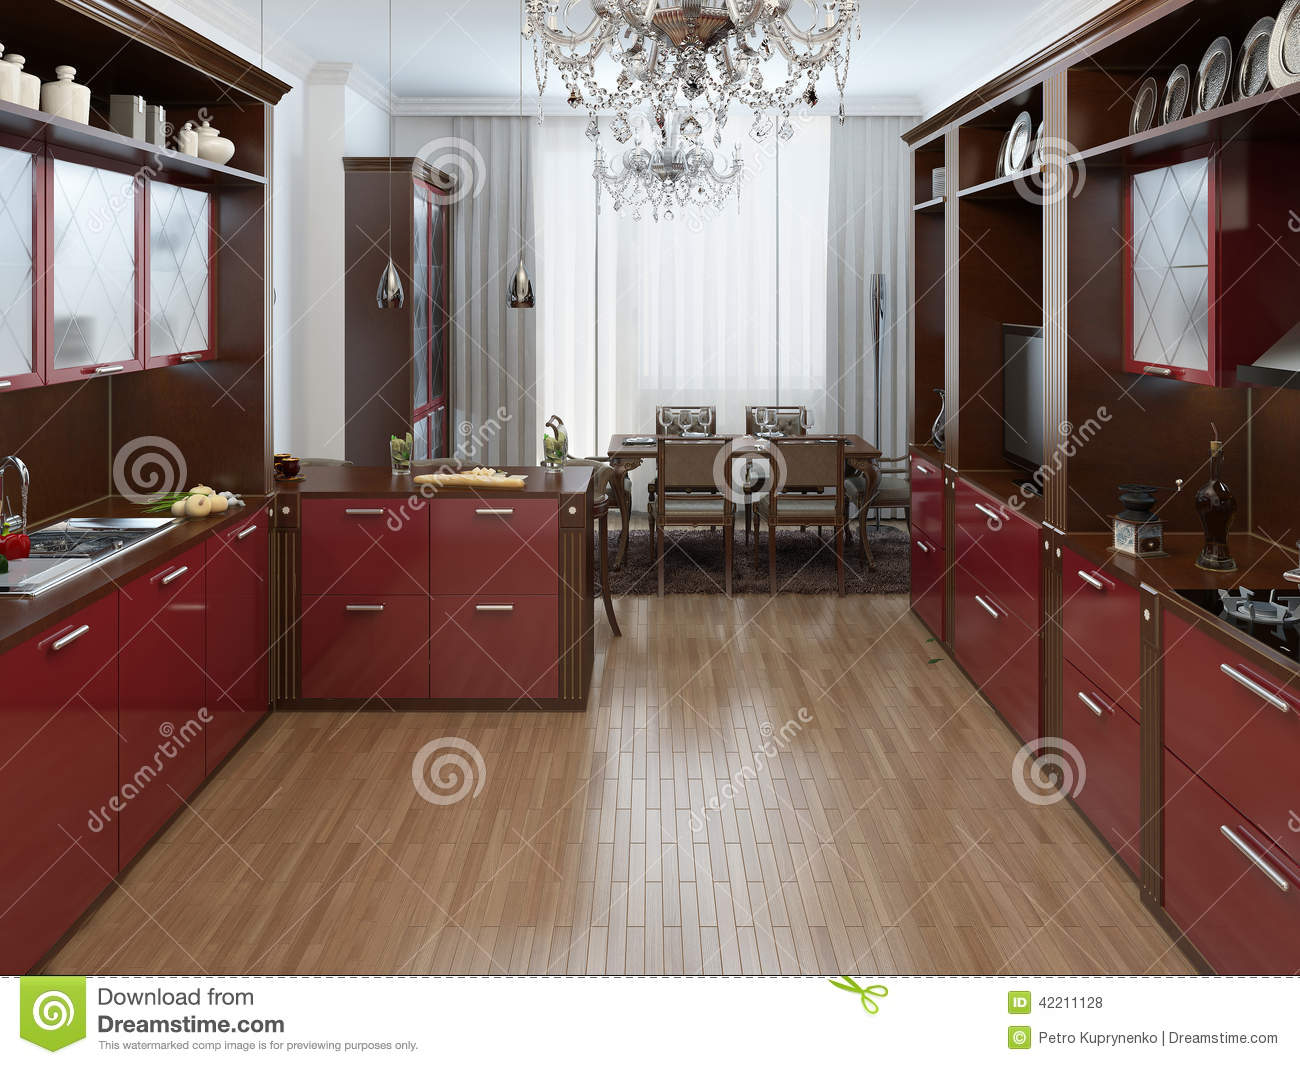 cuisine dans le style d 39 art deco illustration stock image 42211128. Black Bedroom Furniture Sets. Home Design Ideas